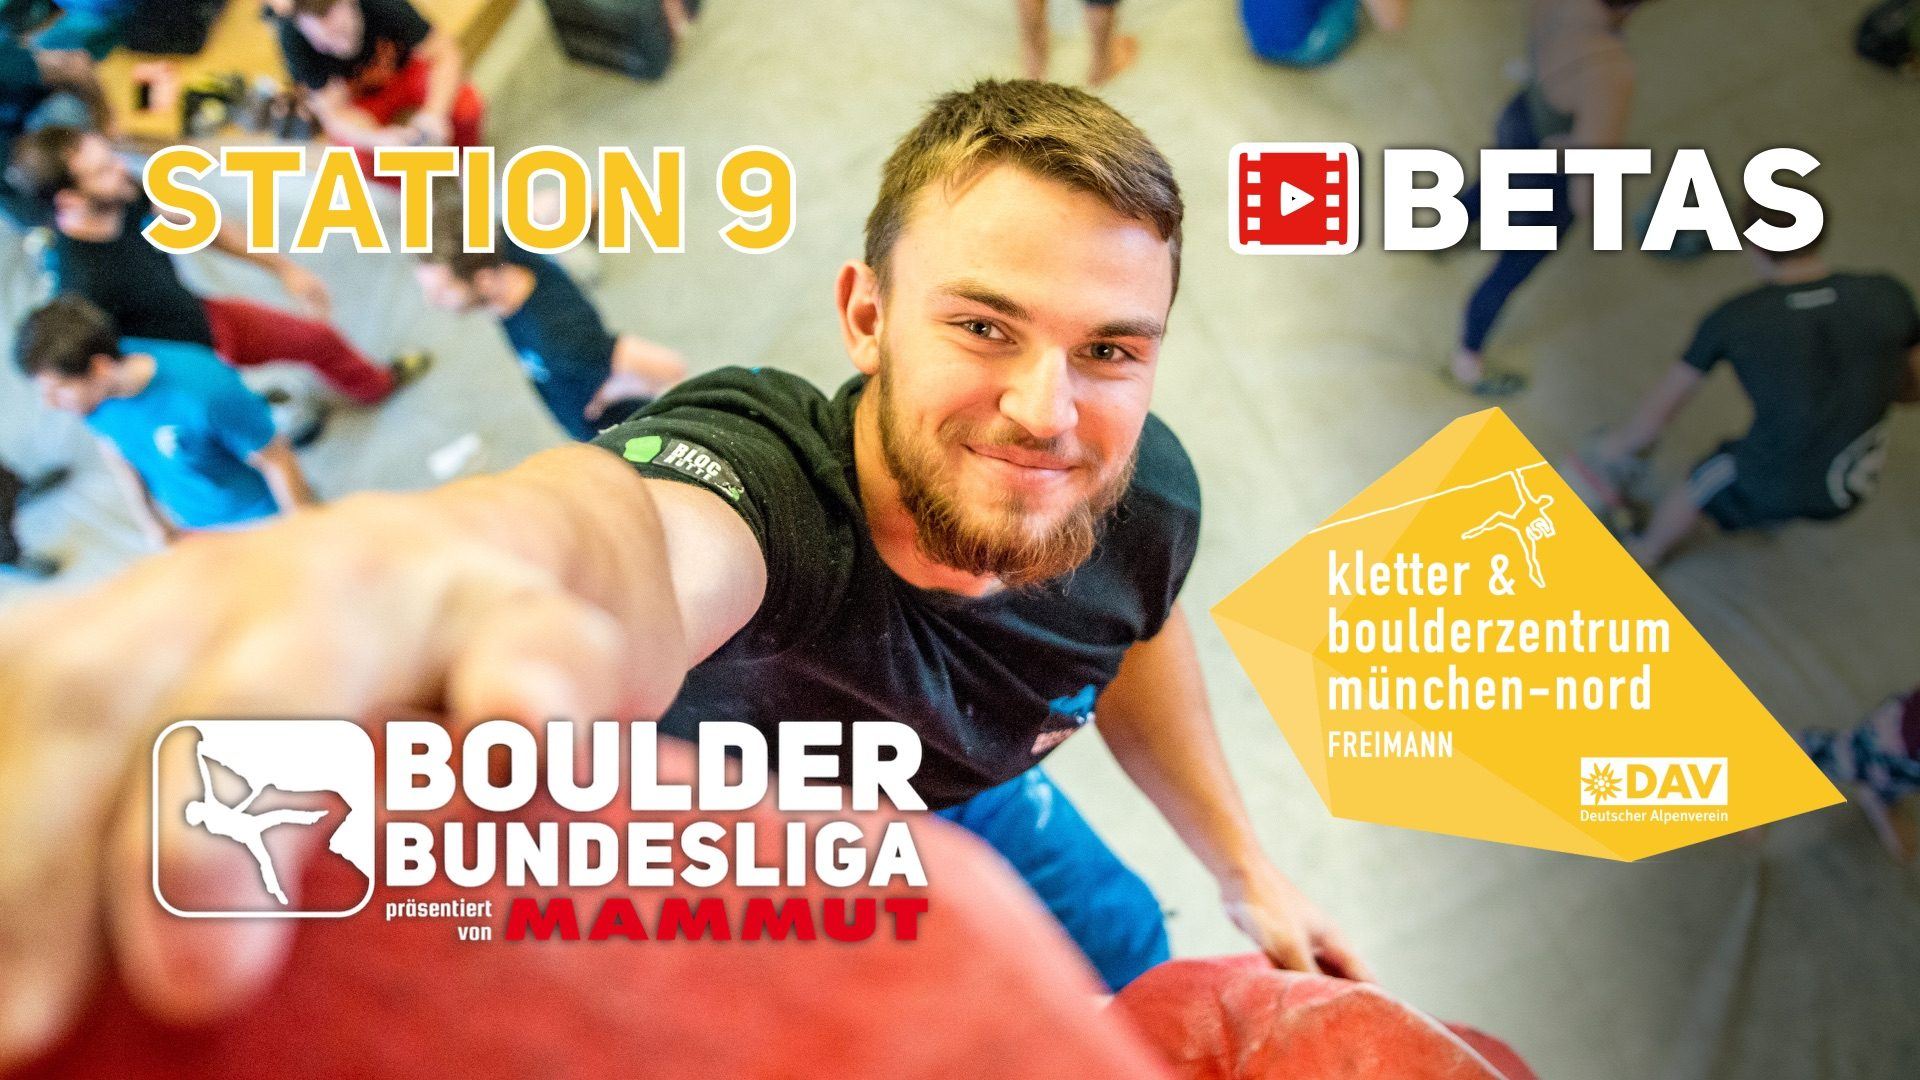 Beta Videos – DAV Kletter- und Boulderzentrum Freimann